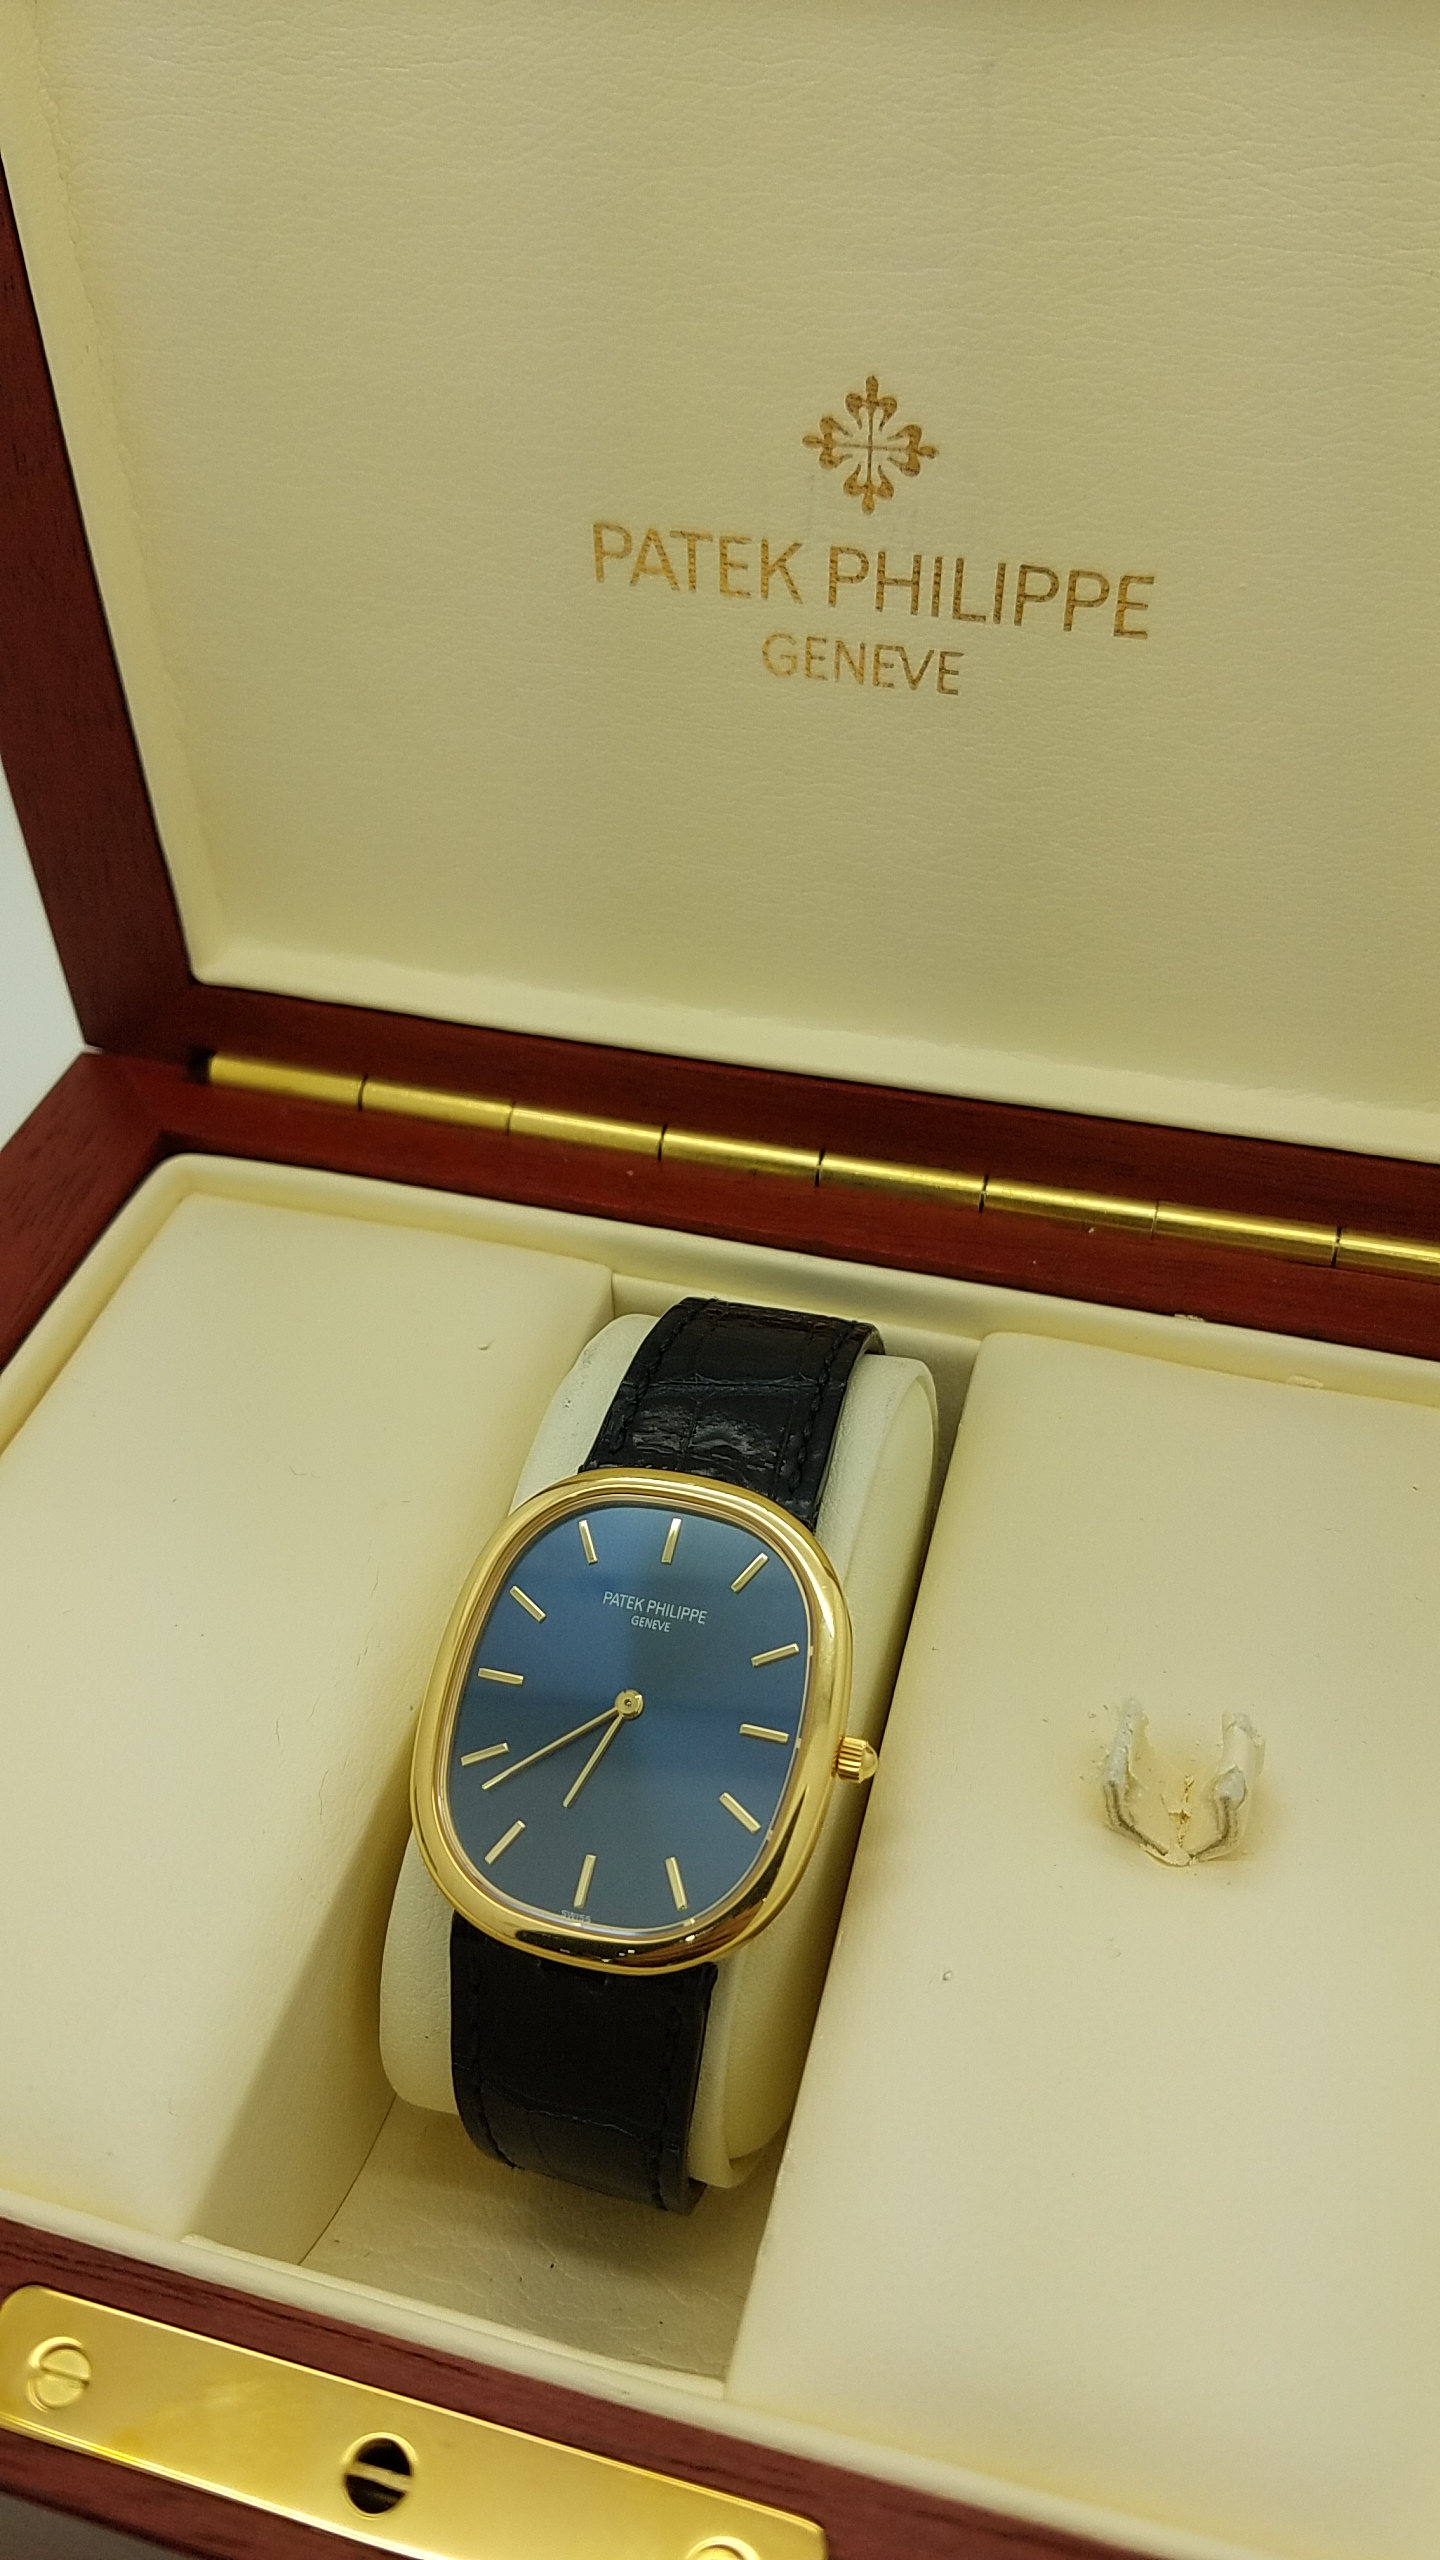 PATEK PHILIPPE	ELLIPSE 	3738	18k Yellow Gold	Genuine Leather	31mm		Mechanical (Automatic)				WATCH